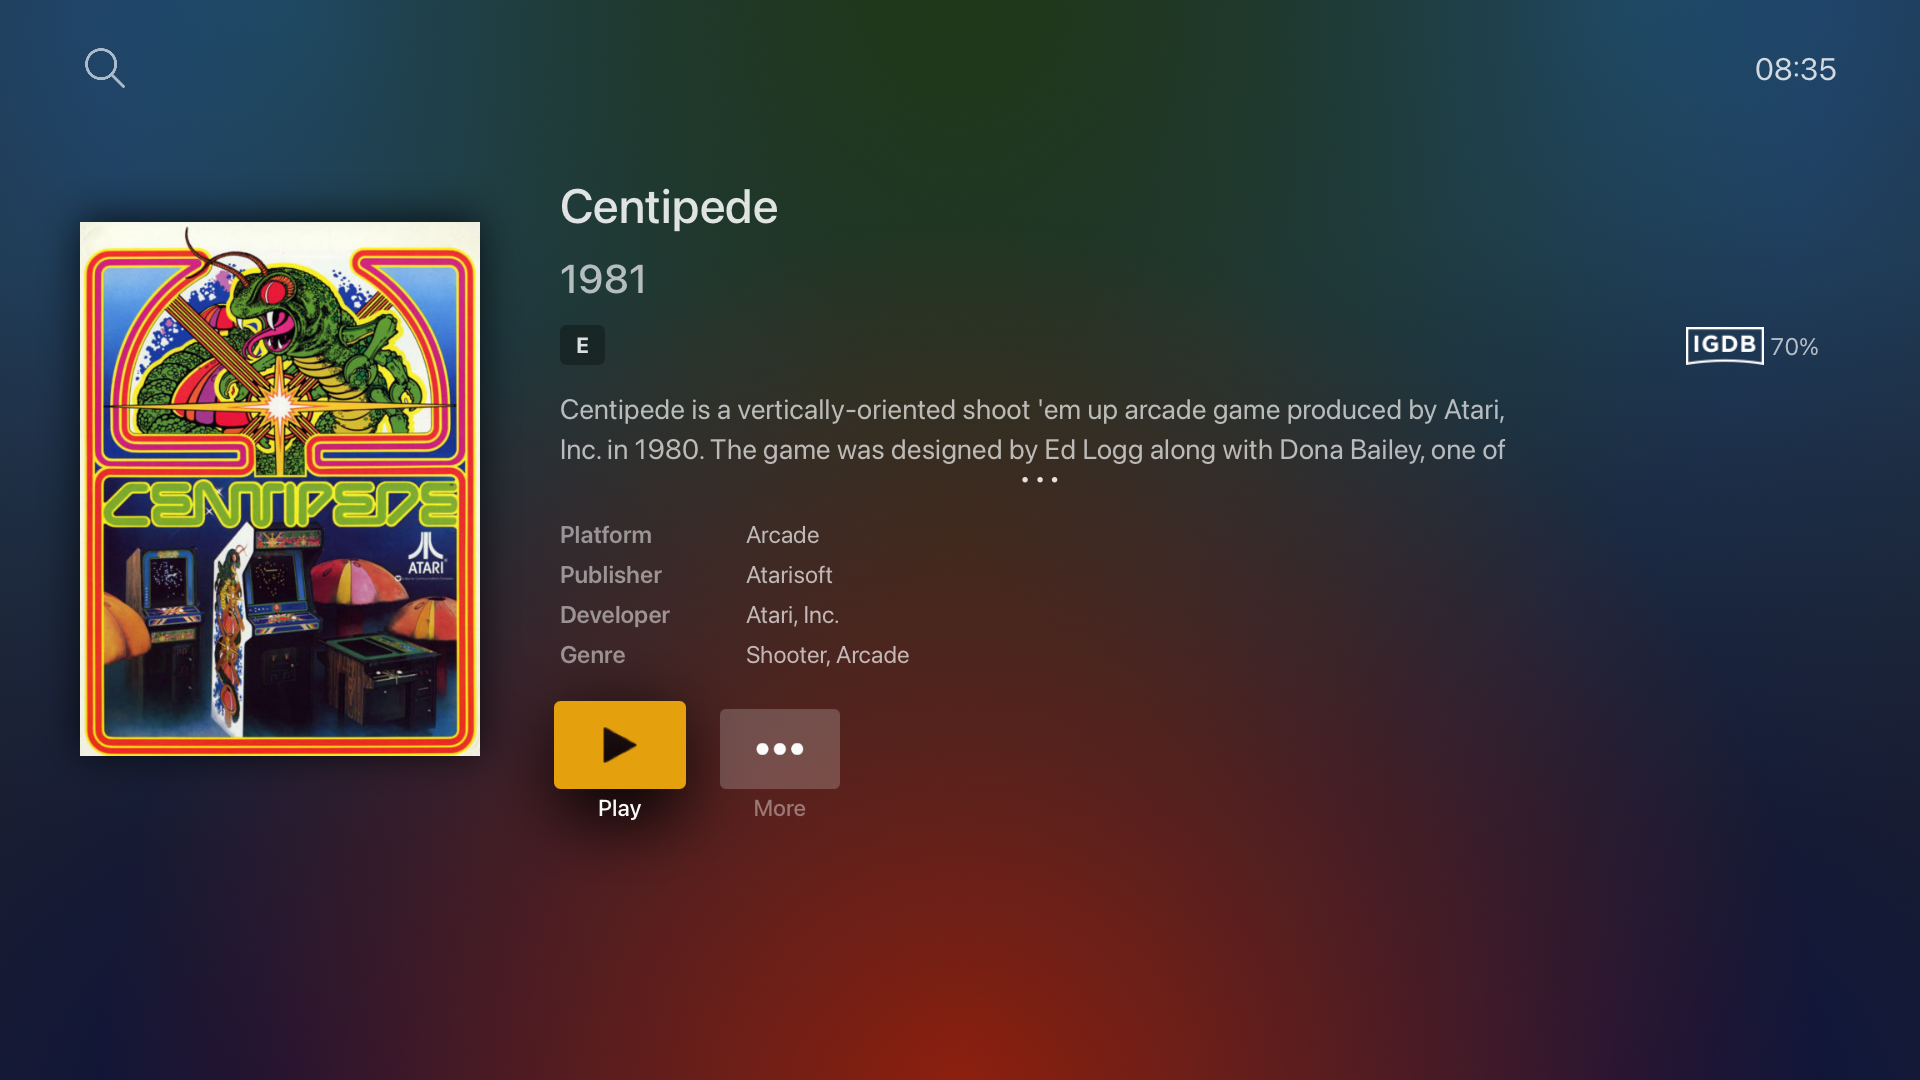 You can now stream arcade games right from within Plex